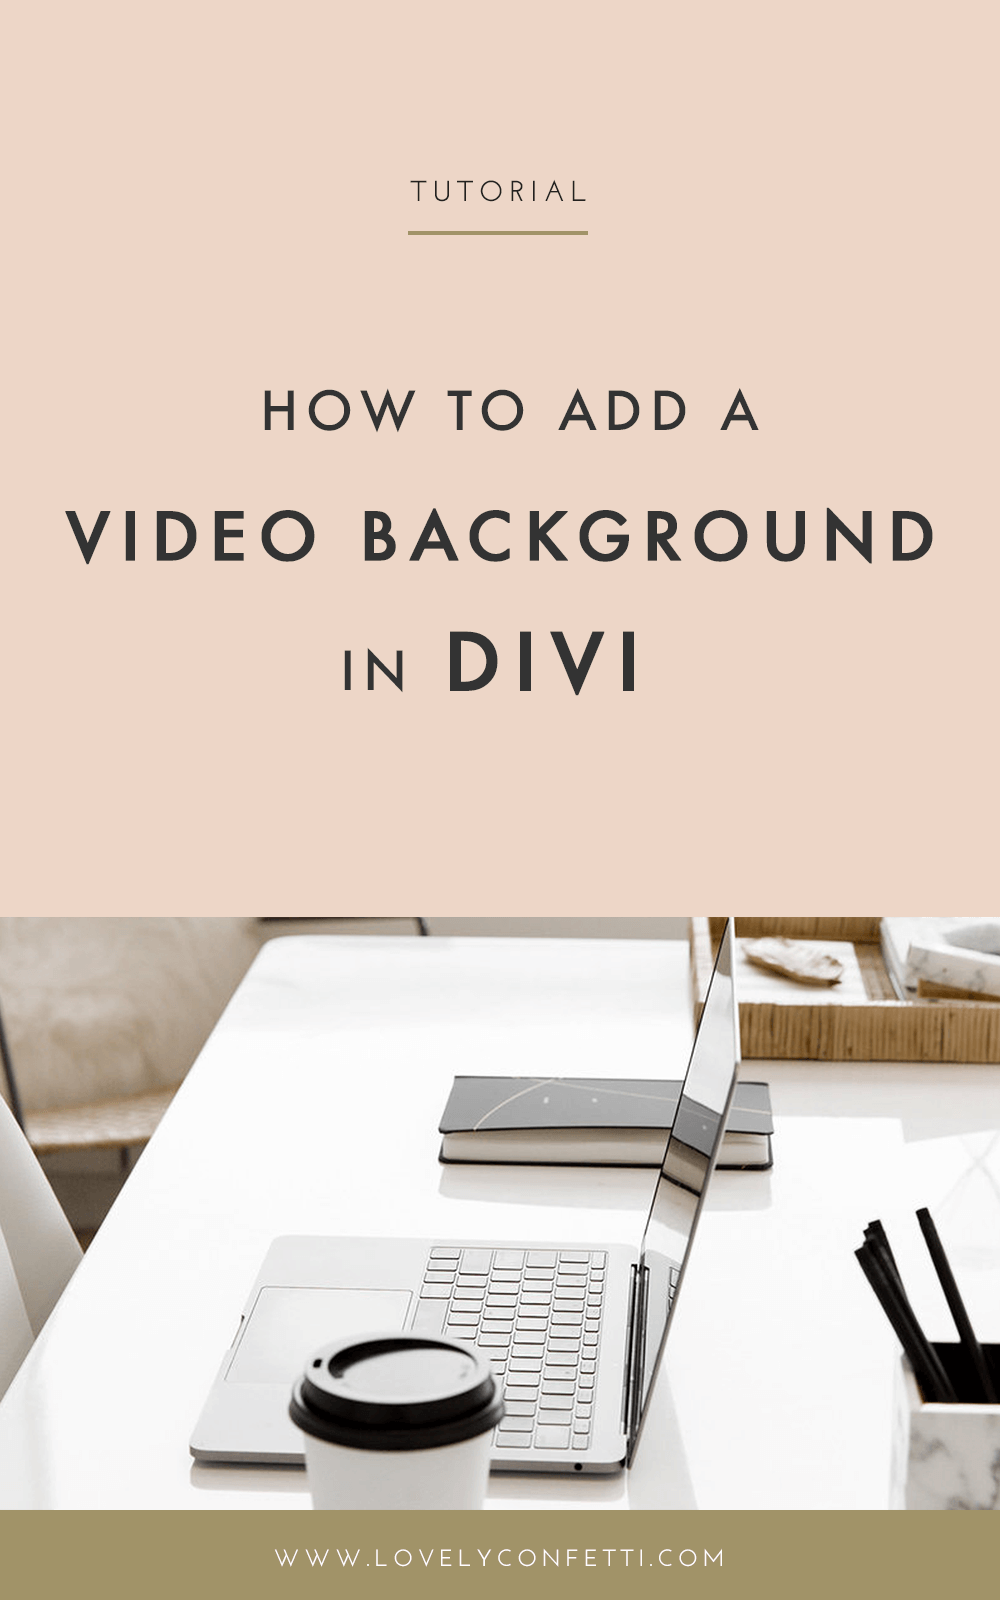 How to Add a Video Background in Divi